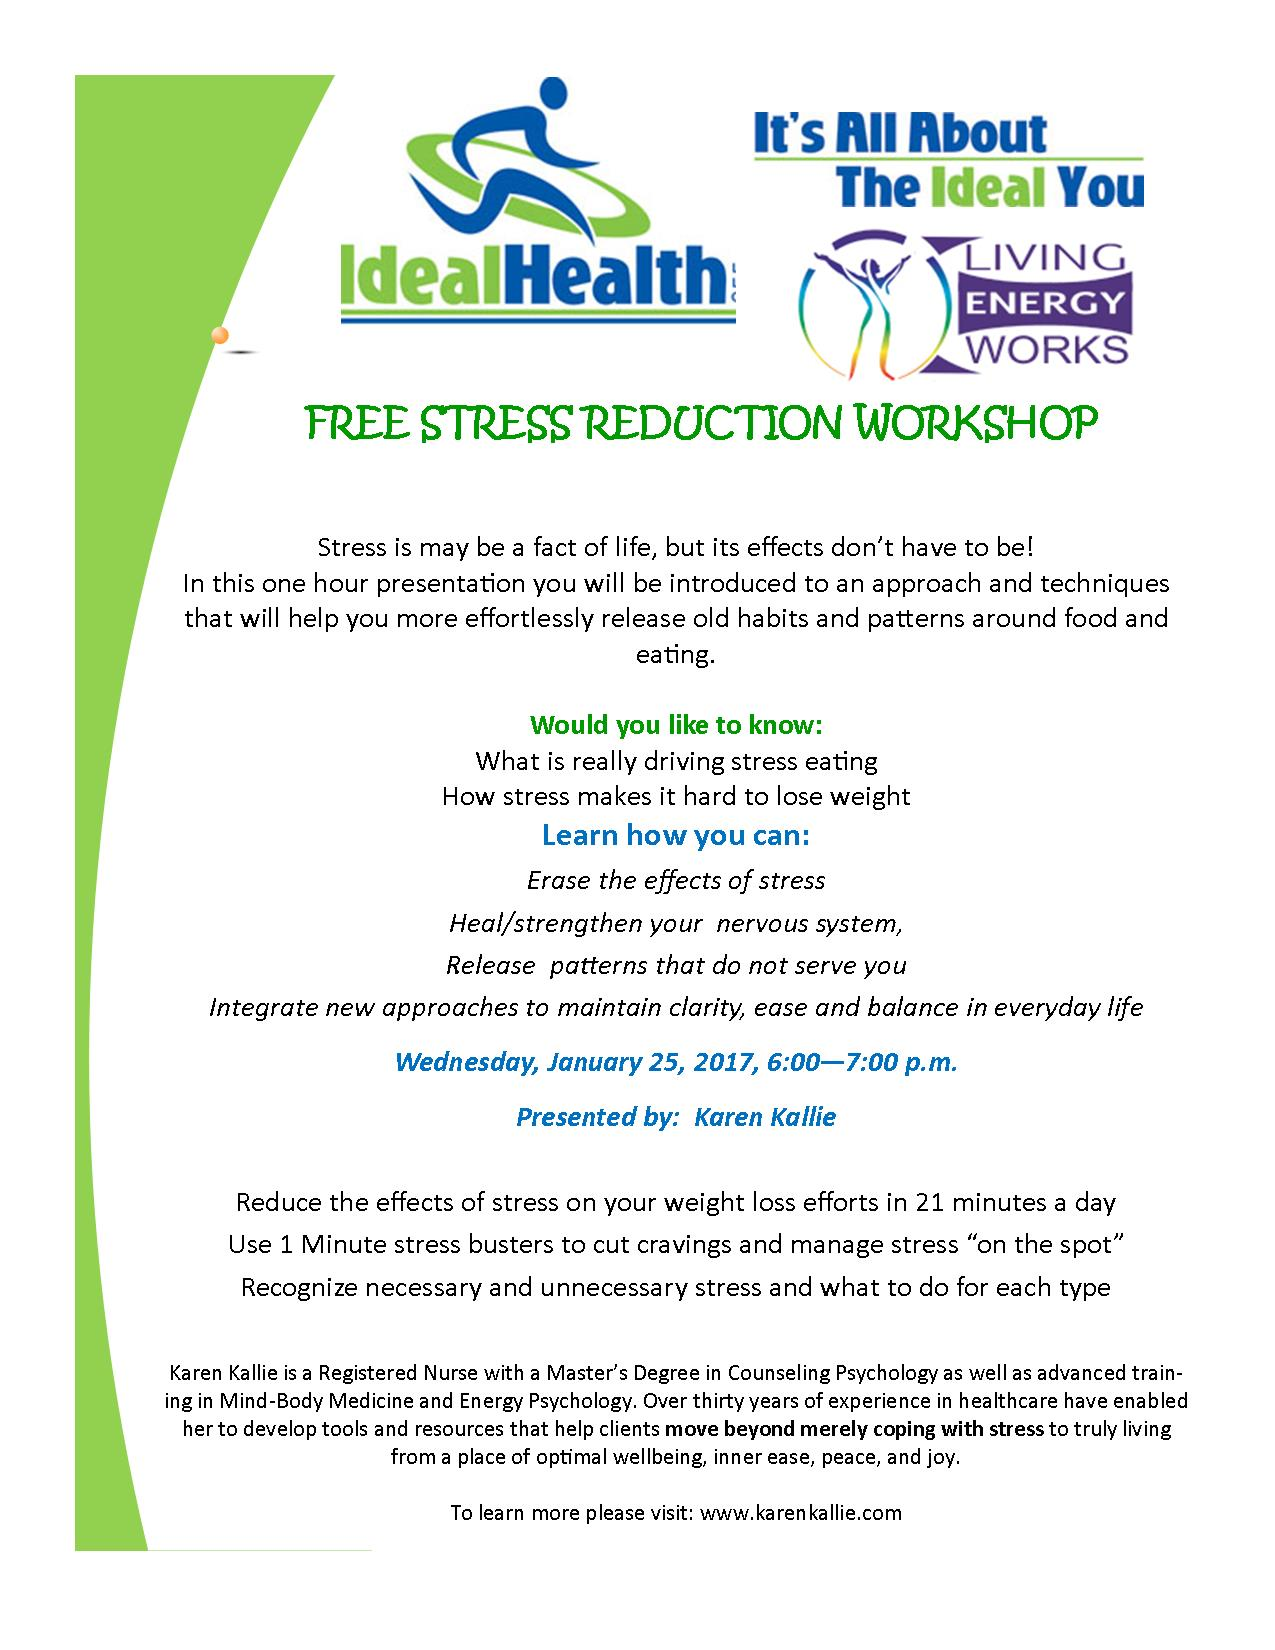 Free Stress Reduction Workshop at Ideal Health